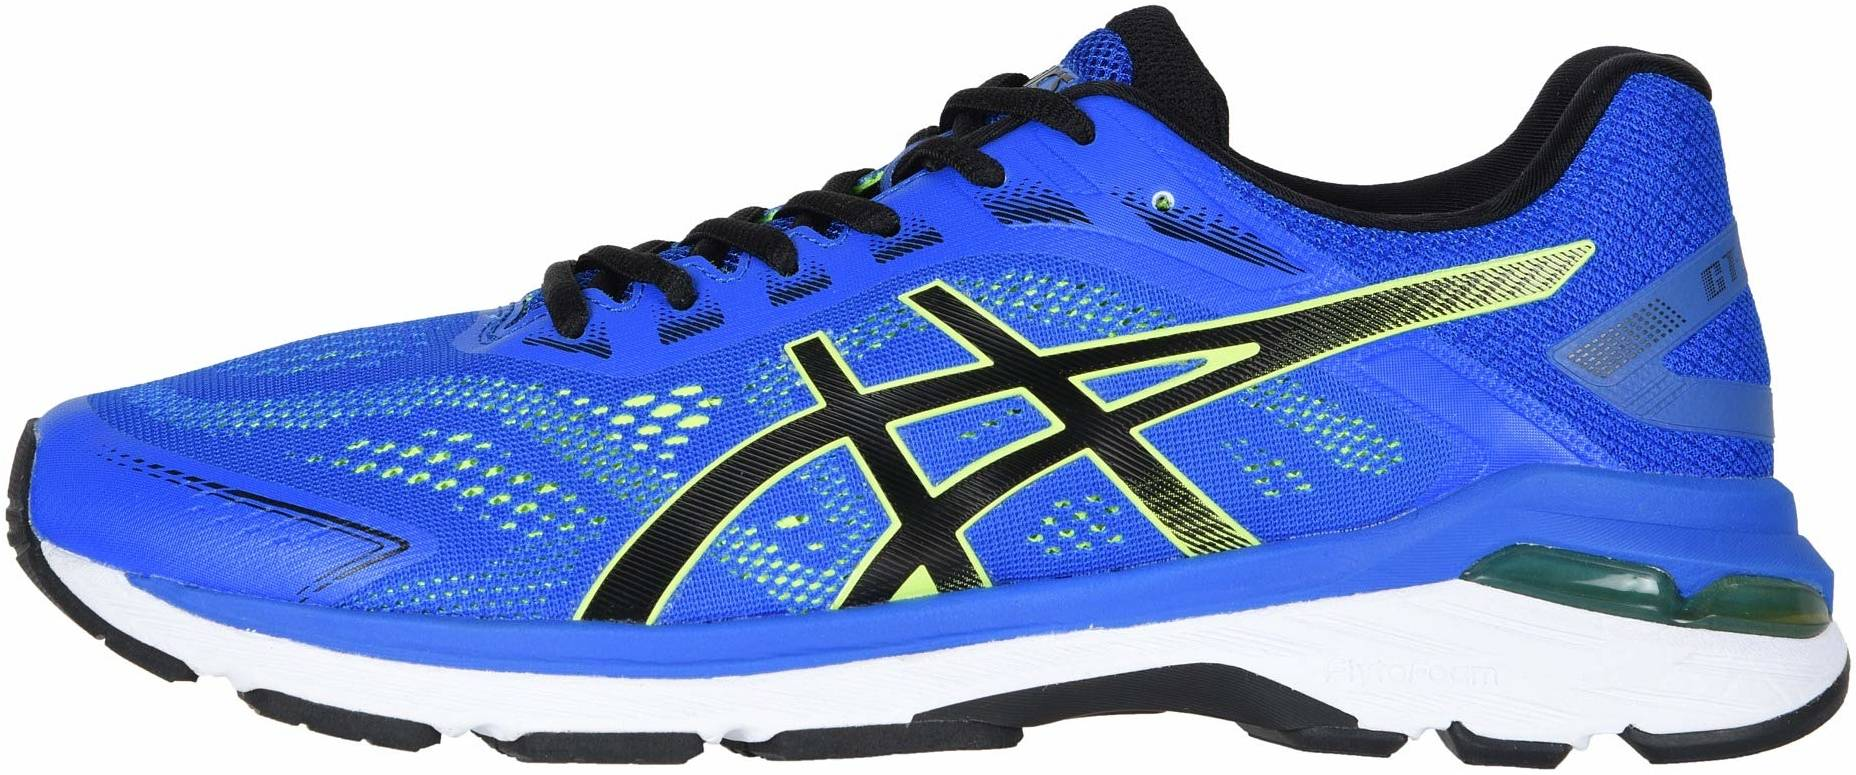 Edredón Padre fage suspensión  Asics GT 2000 7 - Deals ($70), Facts, Reviews (2021) | RunRepeat